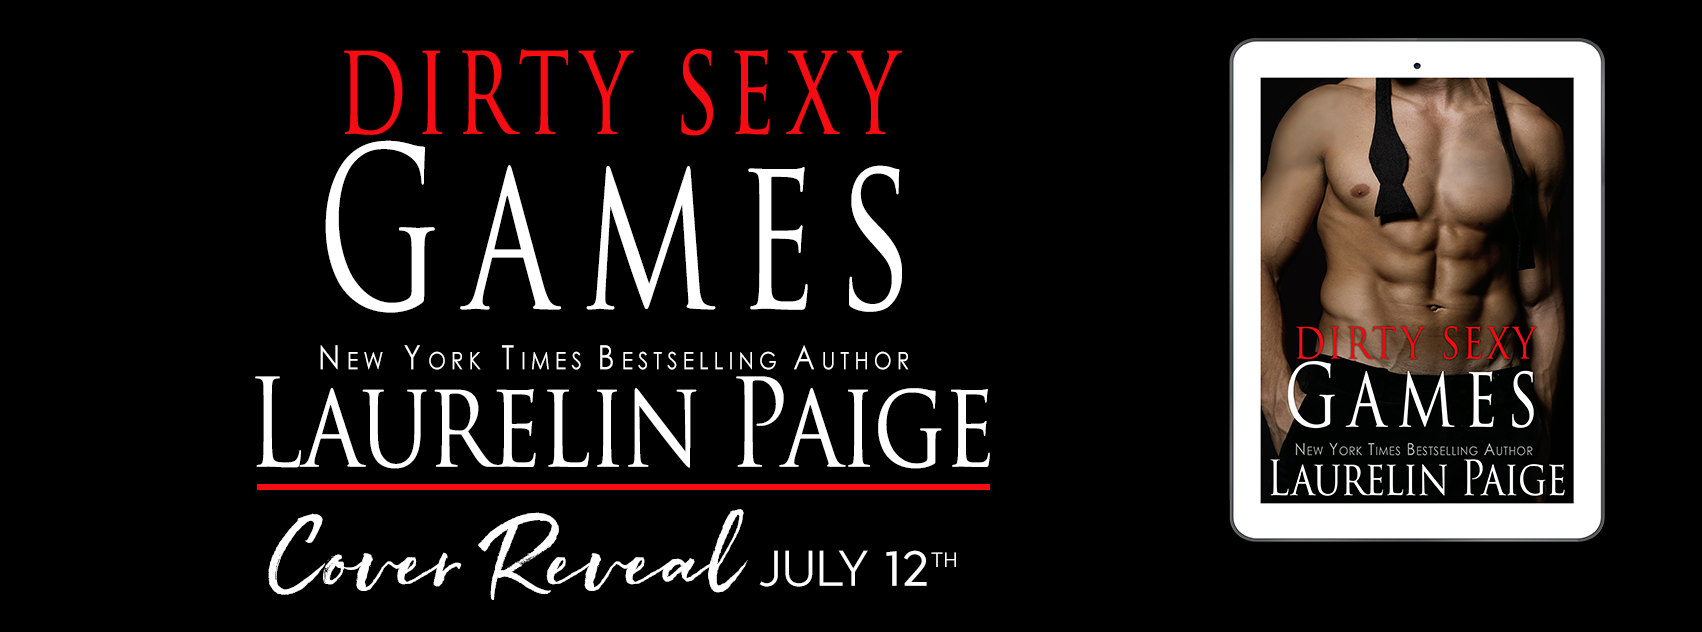 Check out the cover for DIRTY SEXY GAMES by Laurelin Paige